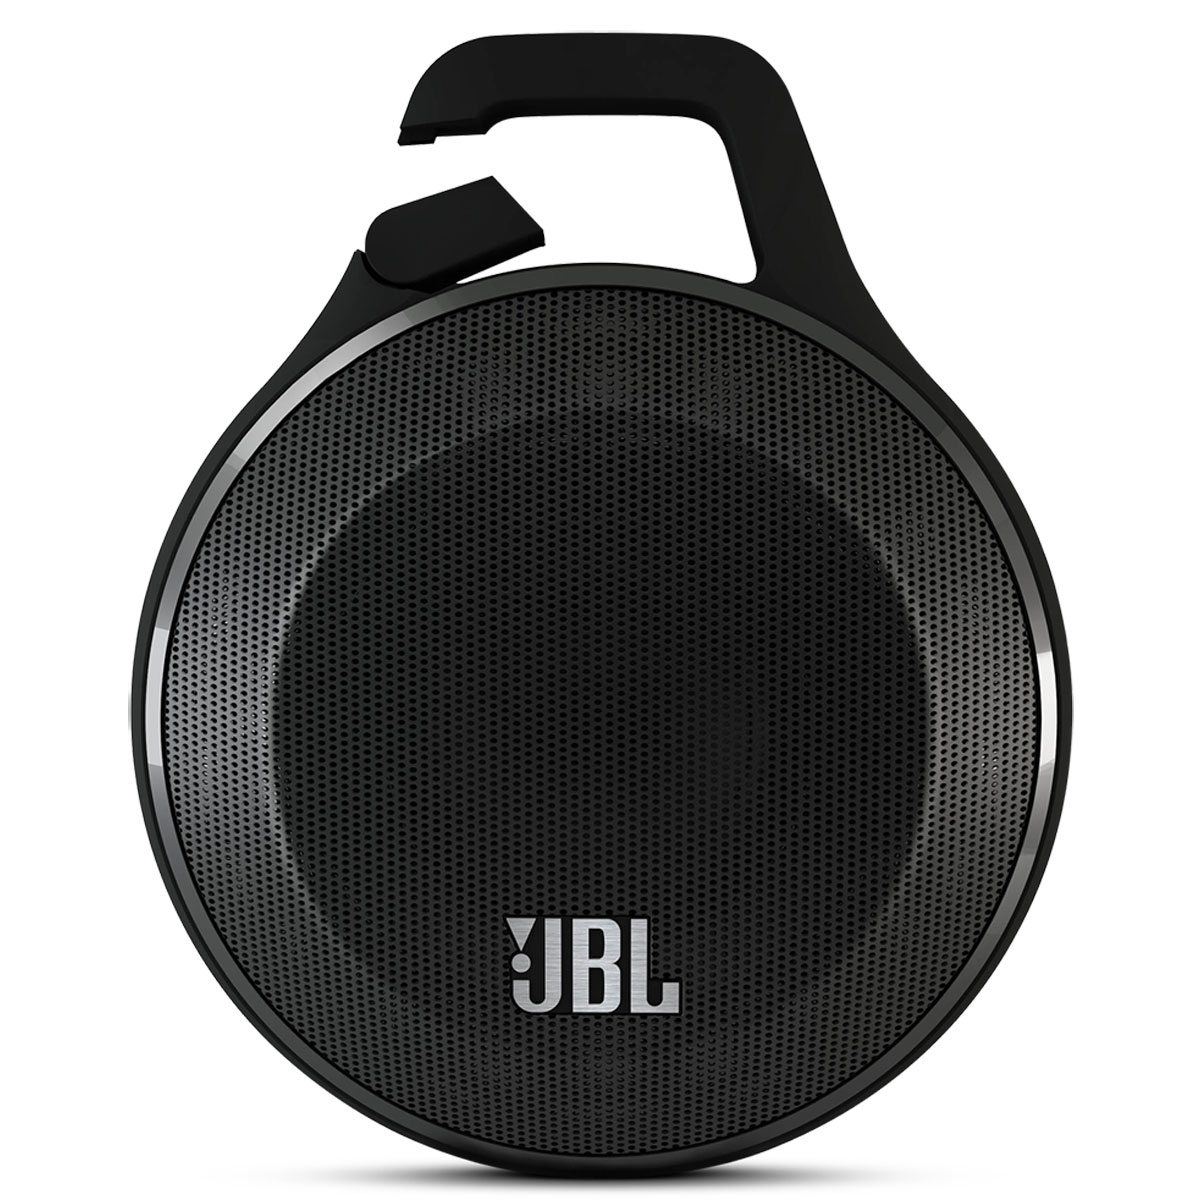 jbl clip noir jblclipblkeu achat vente dock enceinte bluetooth sur. Black Bedroom Furniture Sets. Home Design Ideas